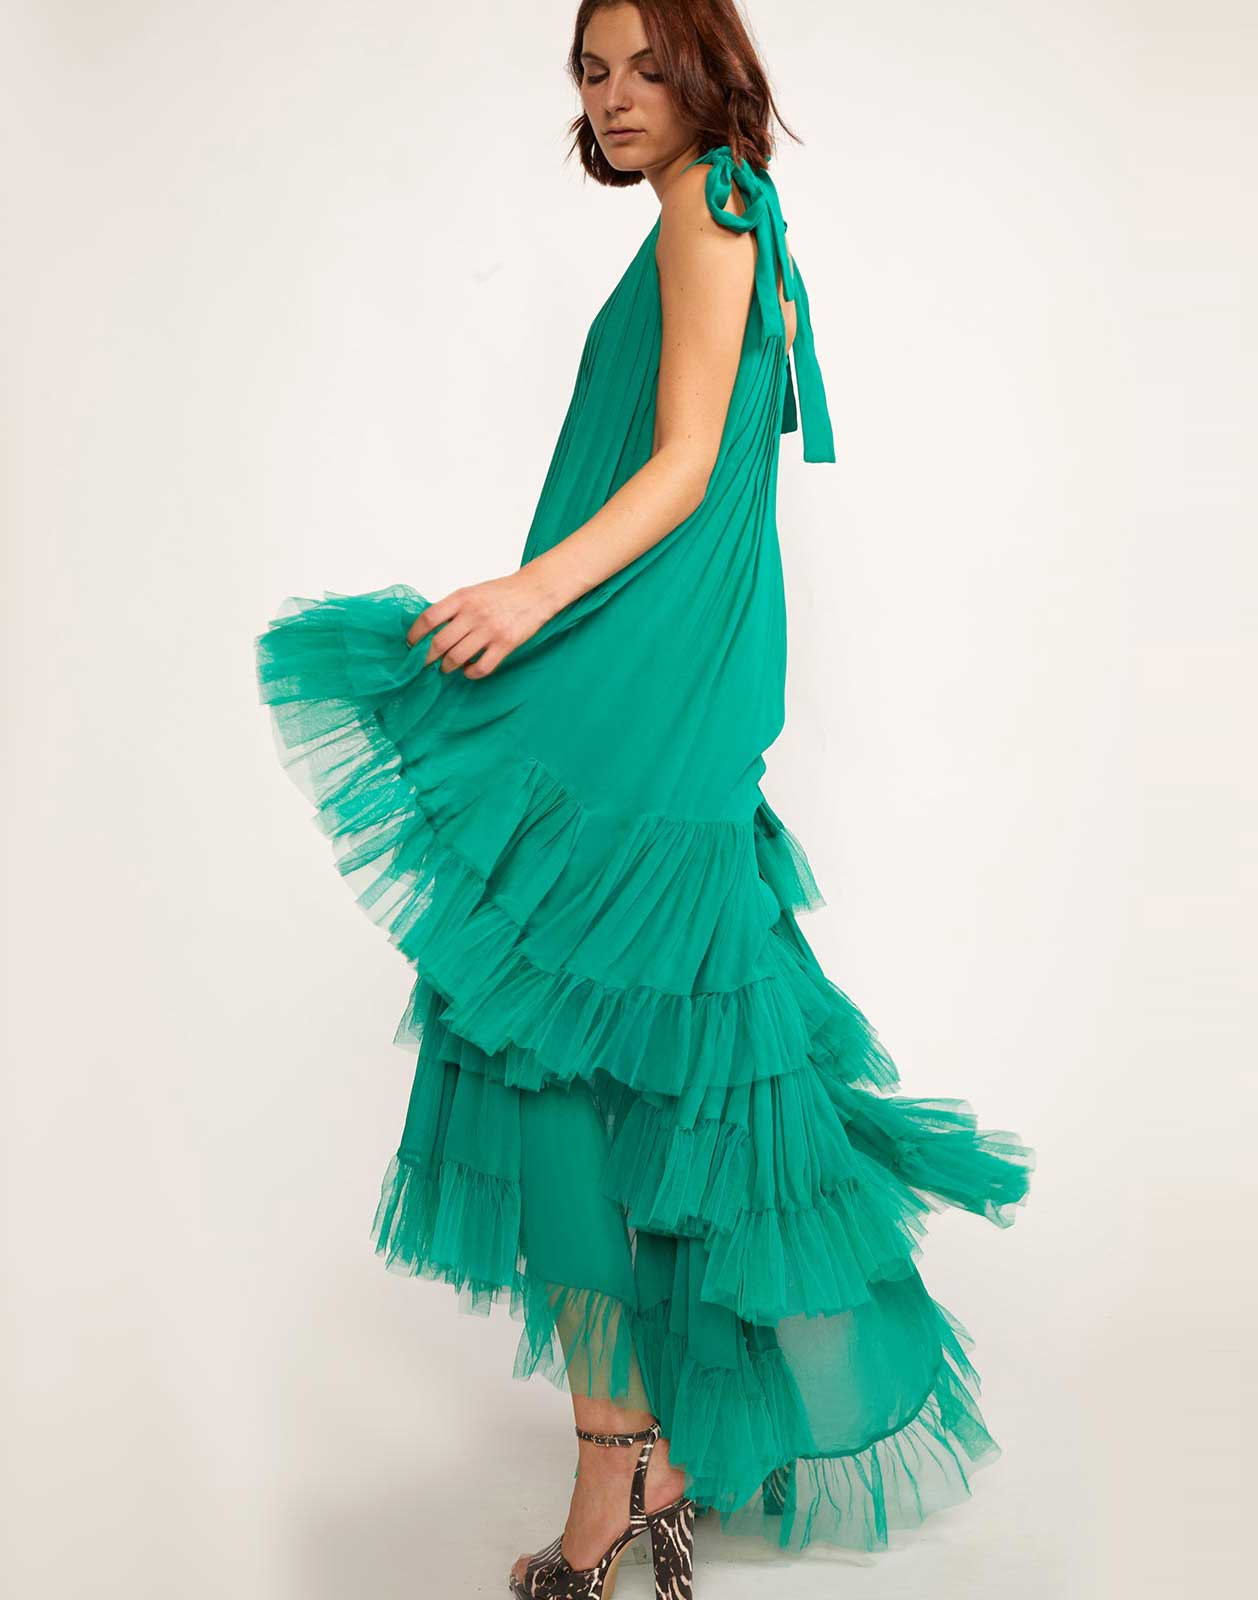 Green dress with high-low hem